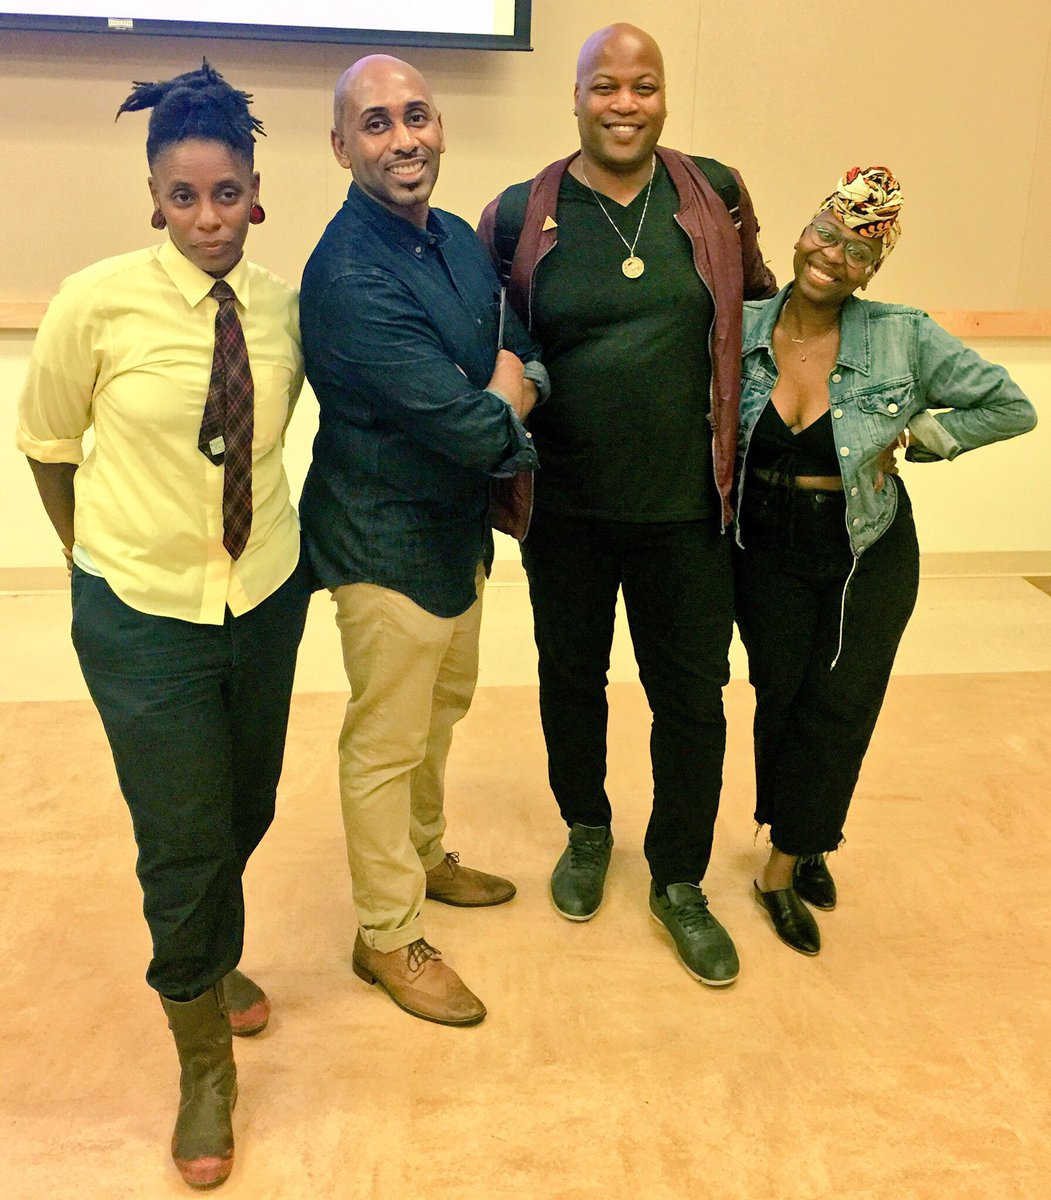 Ccc At Cal State La On Twitter Blaqueer Scholar Magic W Lynneedenise Derraiscarter Zoe Samudzi Queering The Mic Event At Calstatela Earlier This Week Https T Co K1f9hhk9ch